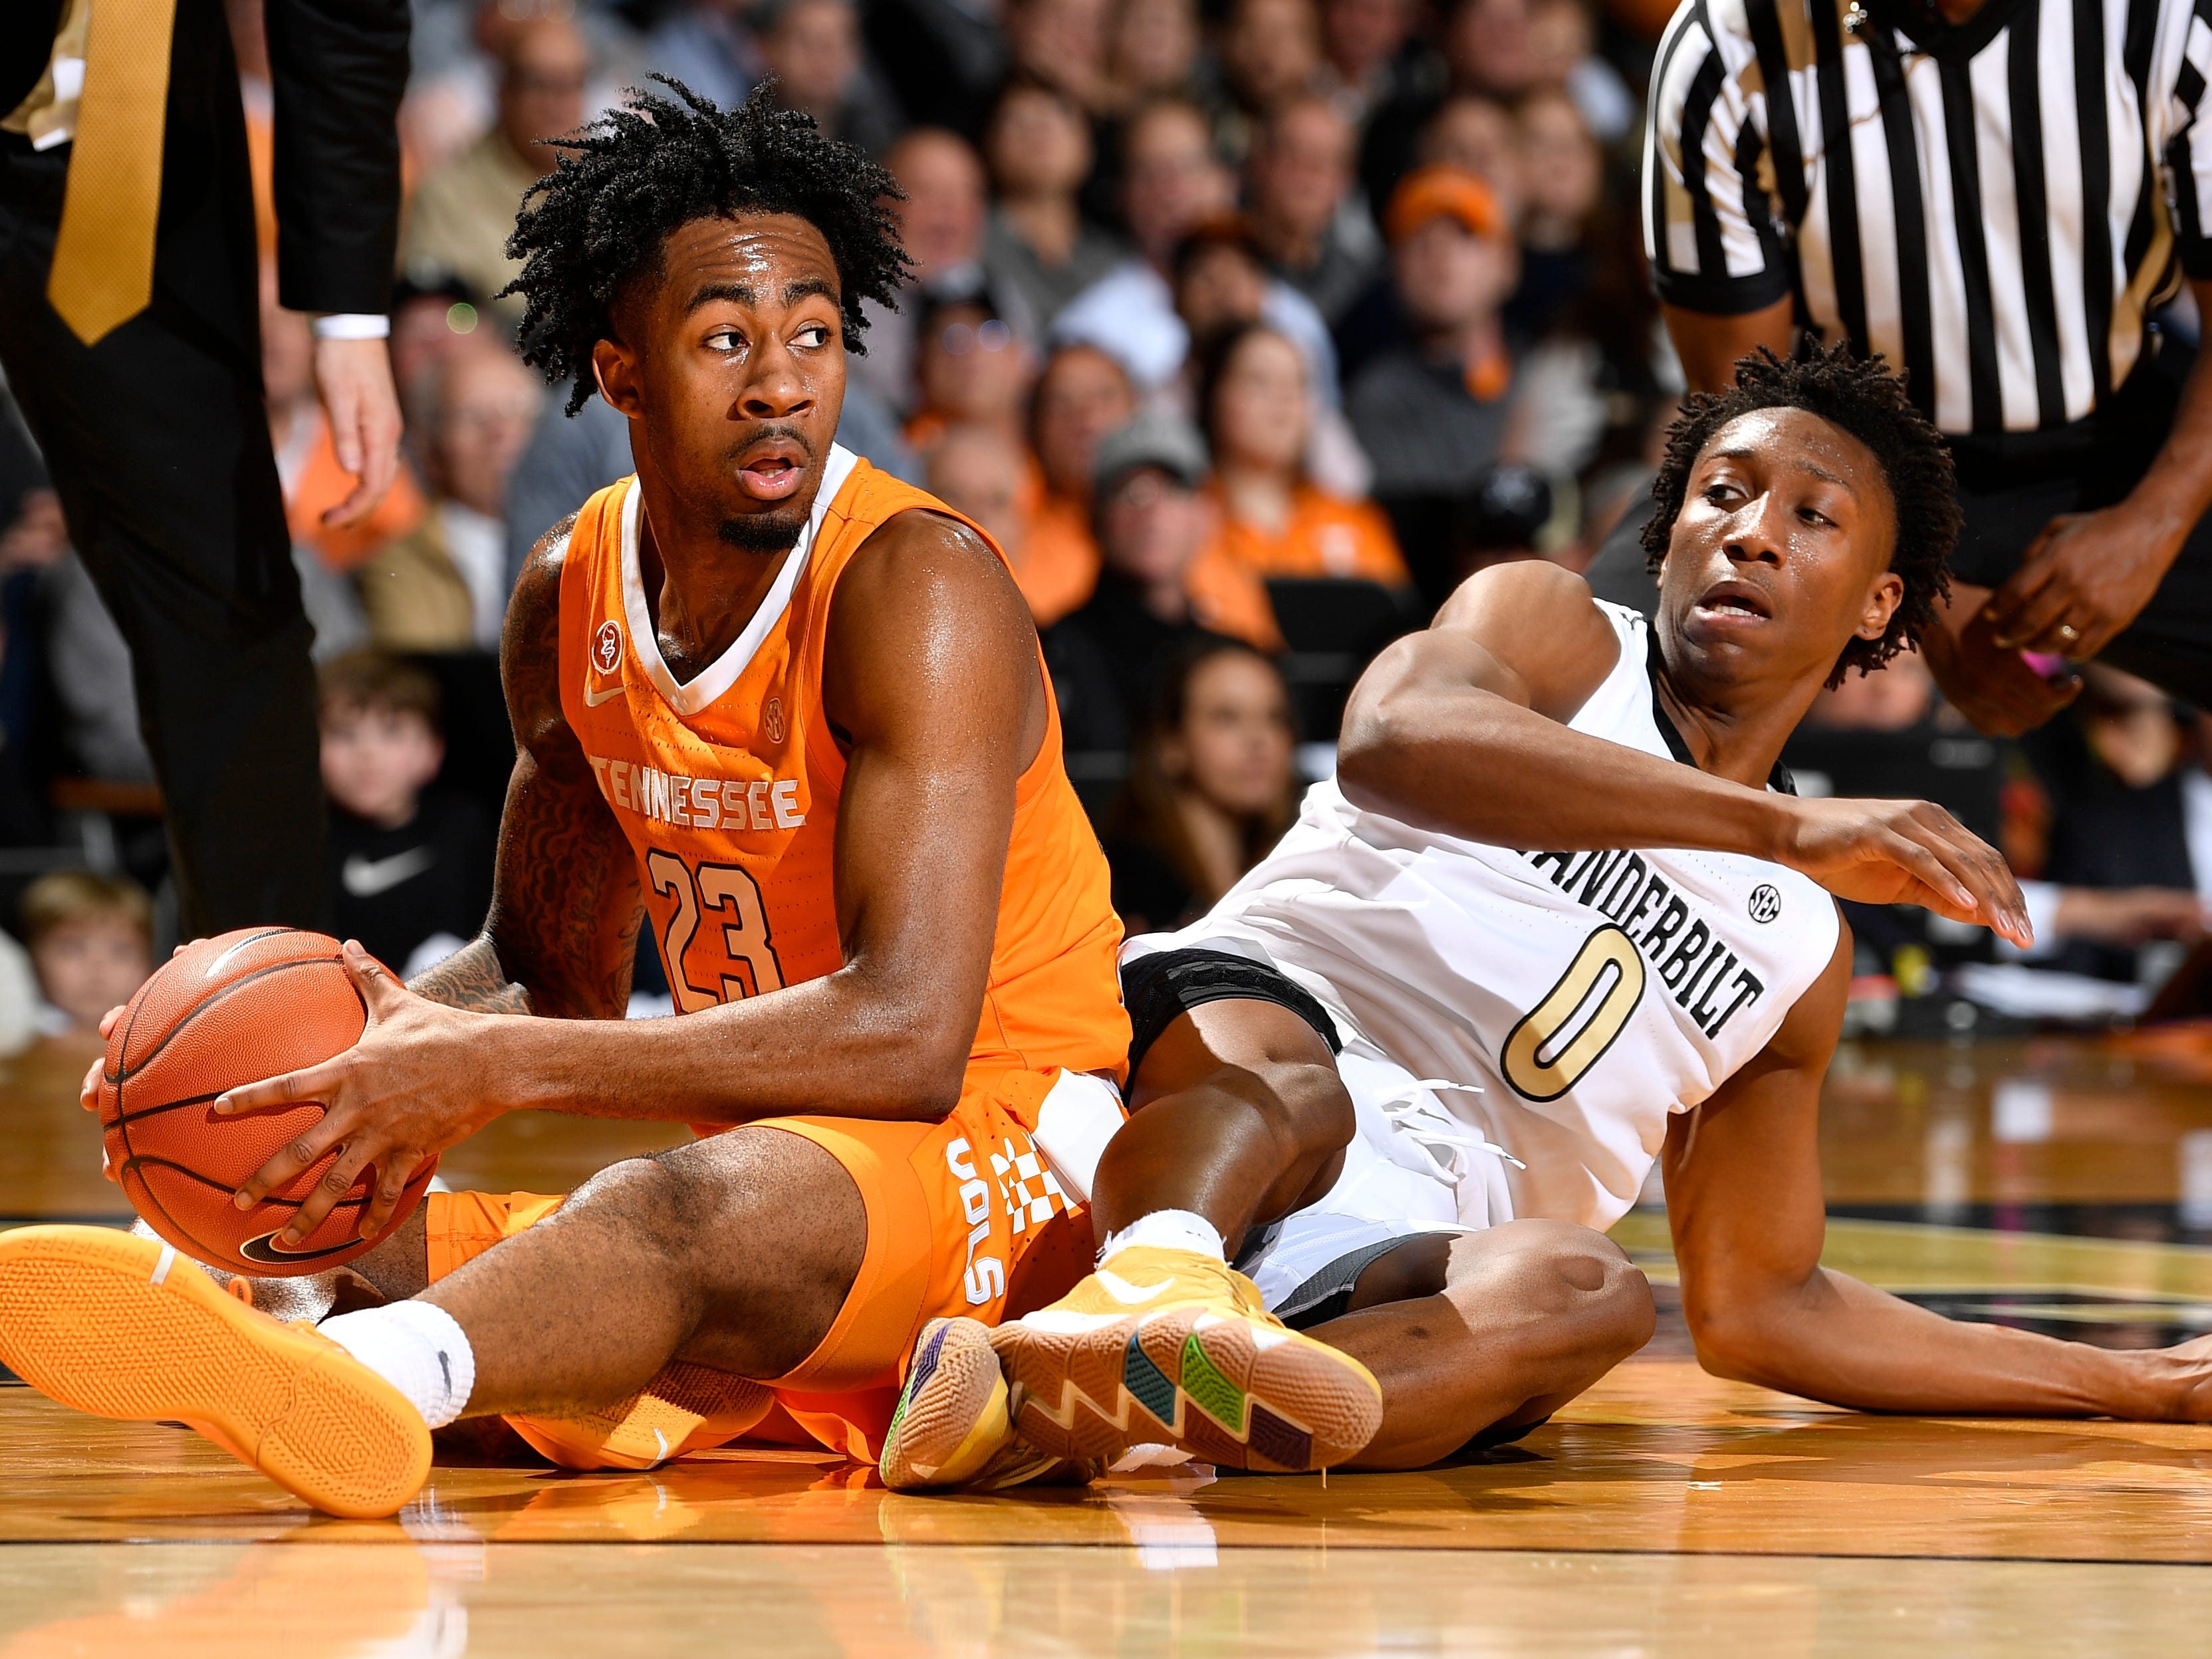 Jordan Bowden: The Carter standout is now a guard at Tennessee.